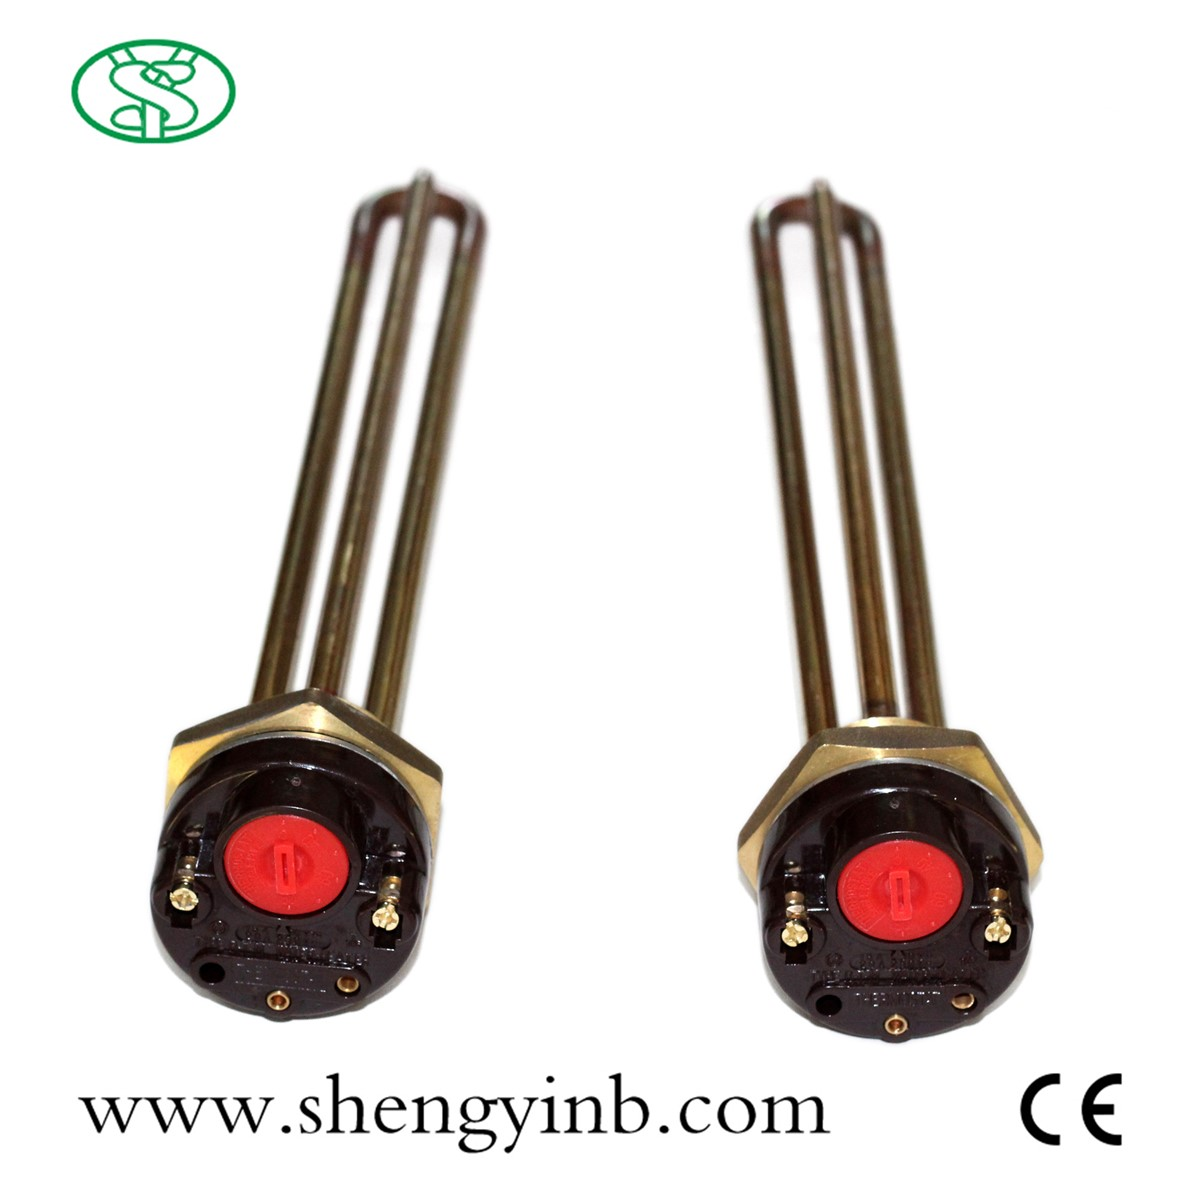 China Manufacturer with main products: Heating Element, Thermostat, Water  Heater Thermometer, Indicator Lamp, Safety Valve